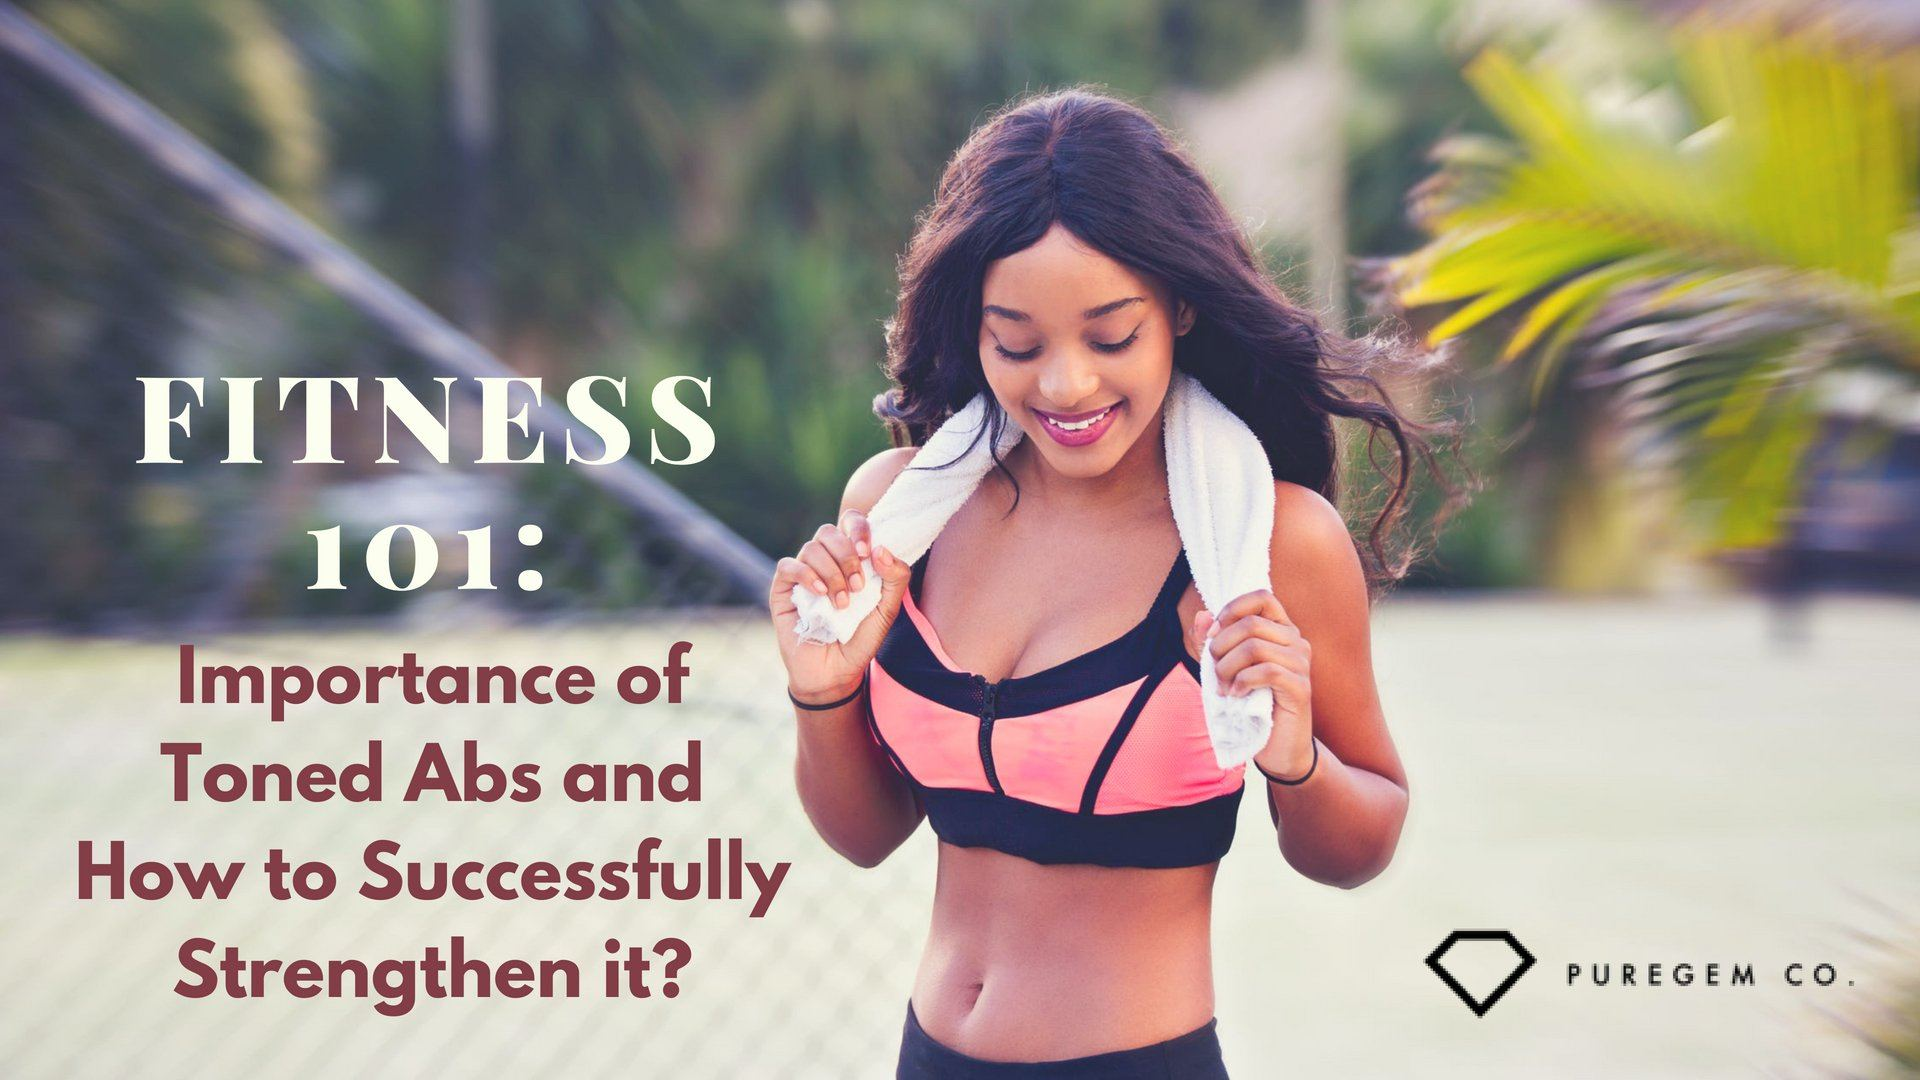 Fitness 101: Importance of Toned Abs and How to Successfully Strengthen it?